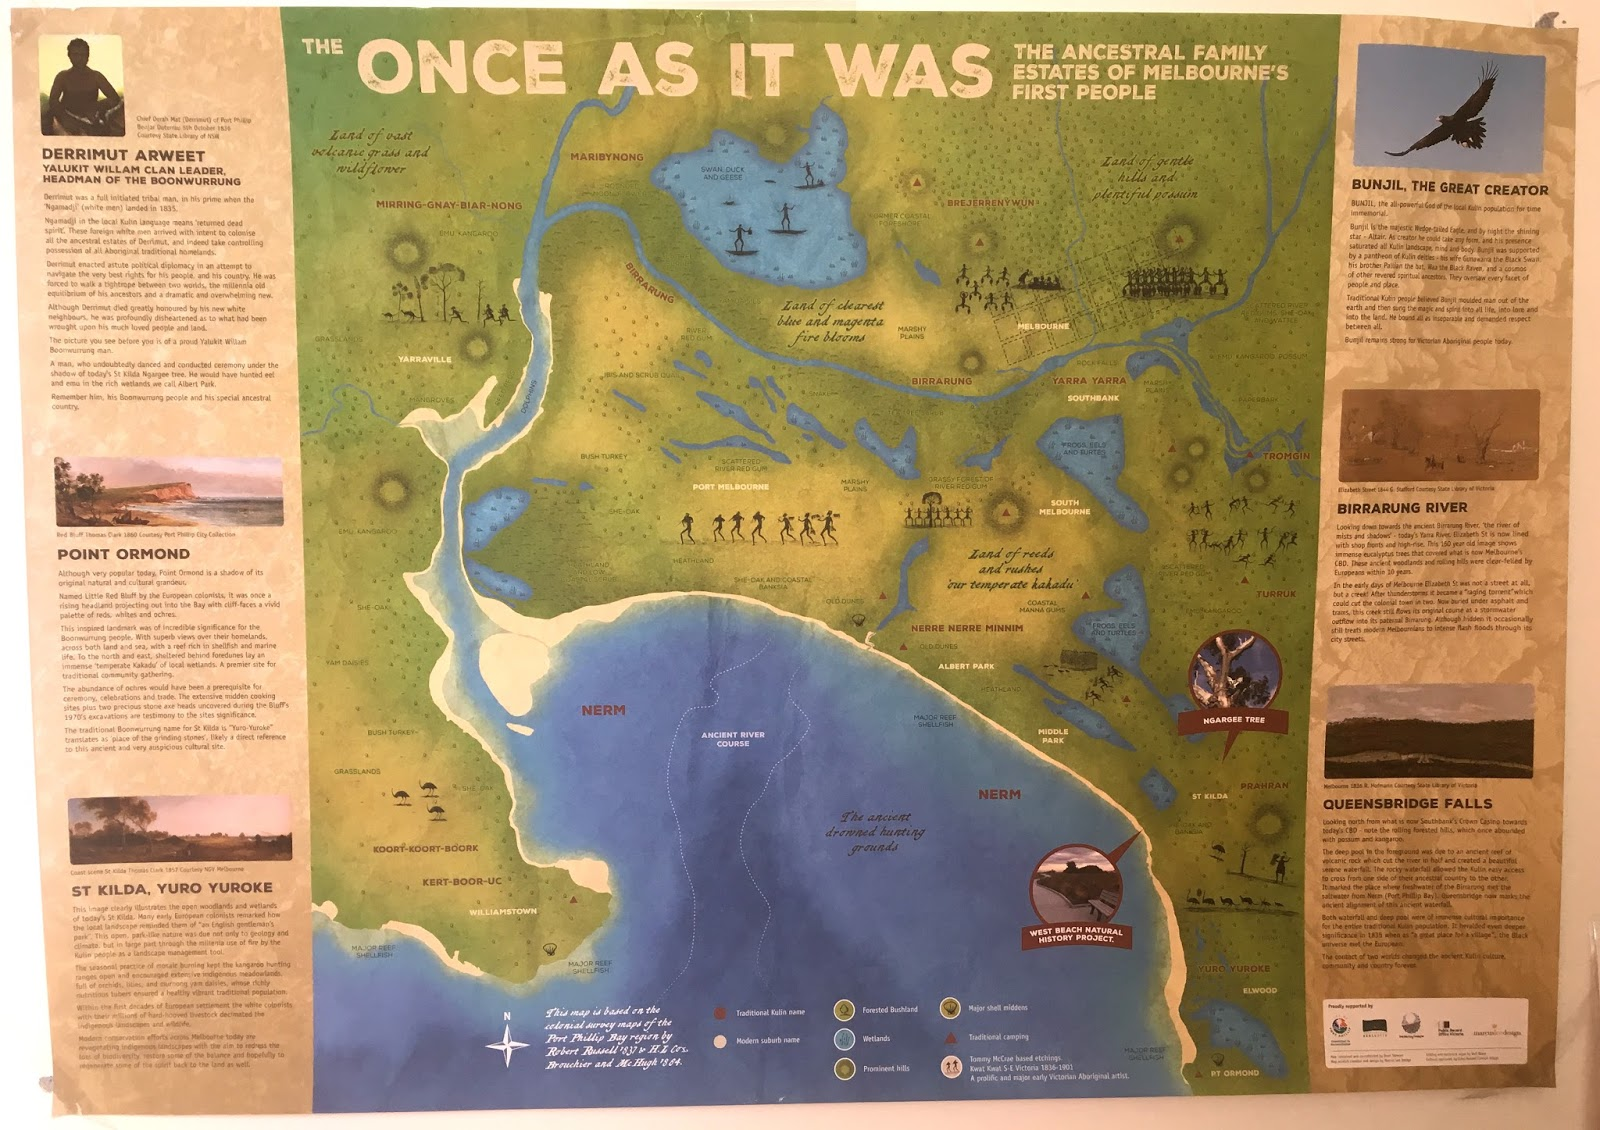 a future map of washington dc that shows our land when the anacostan nacotchtank tribe lived here is now in the works